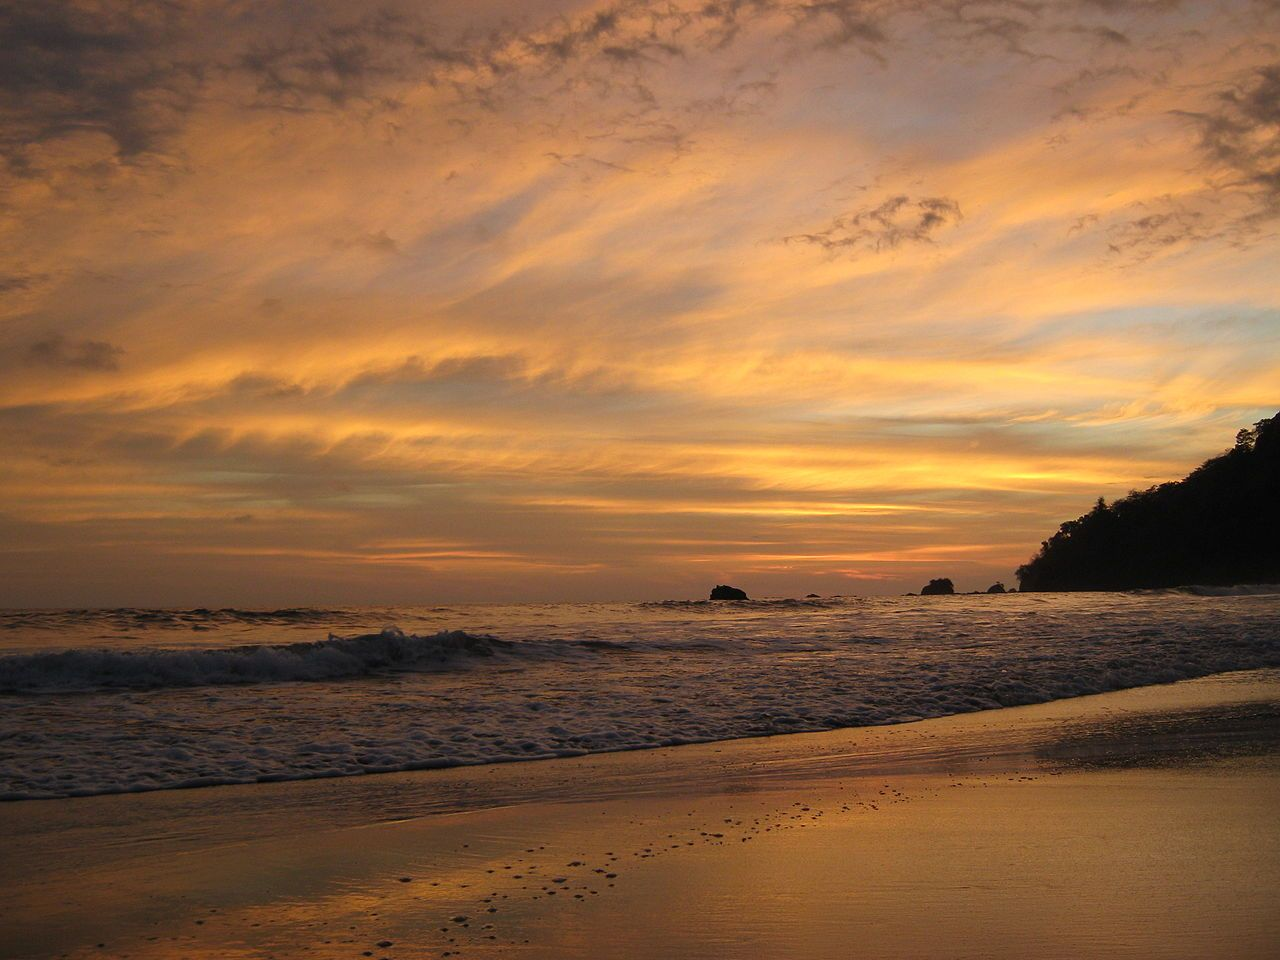 Sunset at Manuel Antonio, Costa Rica